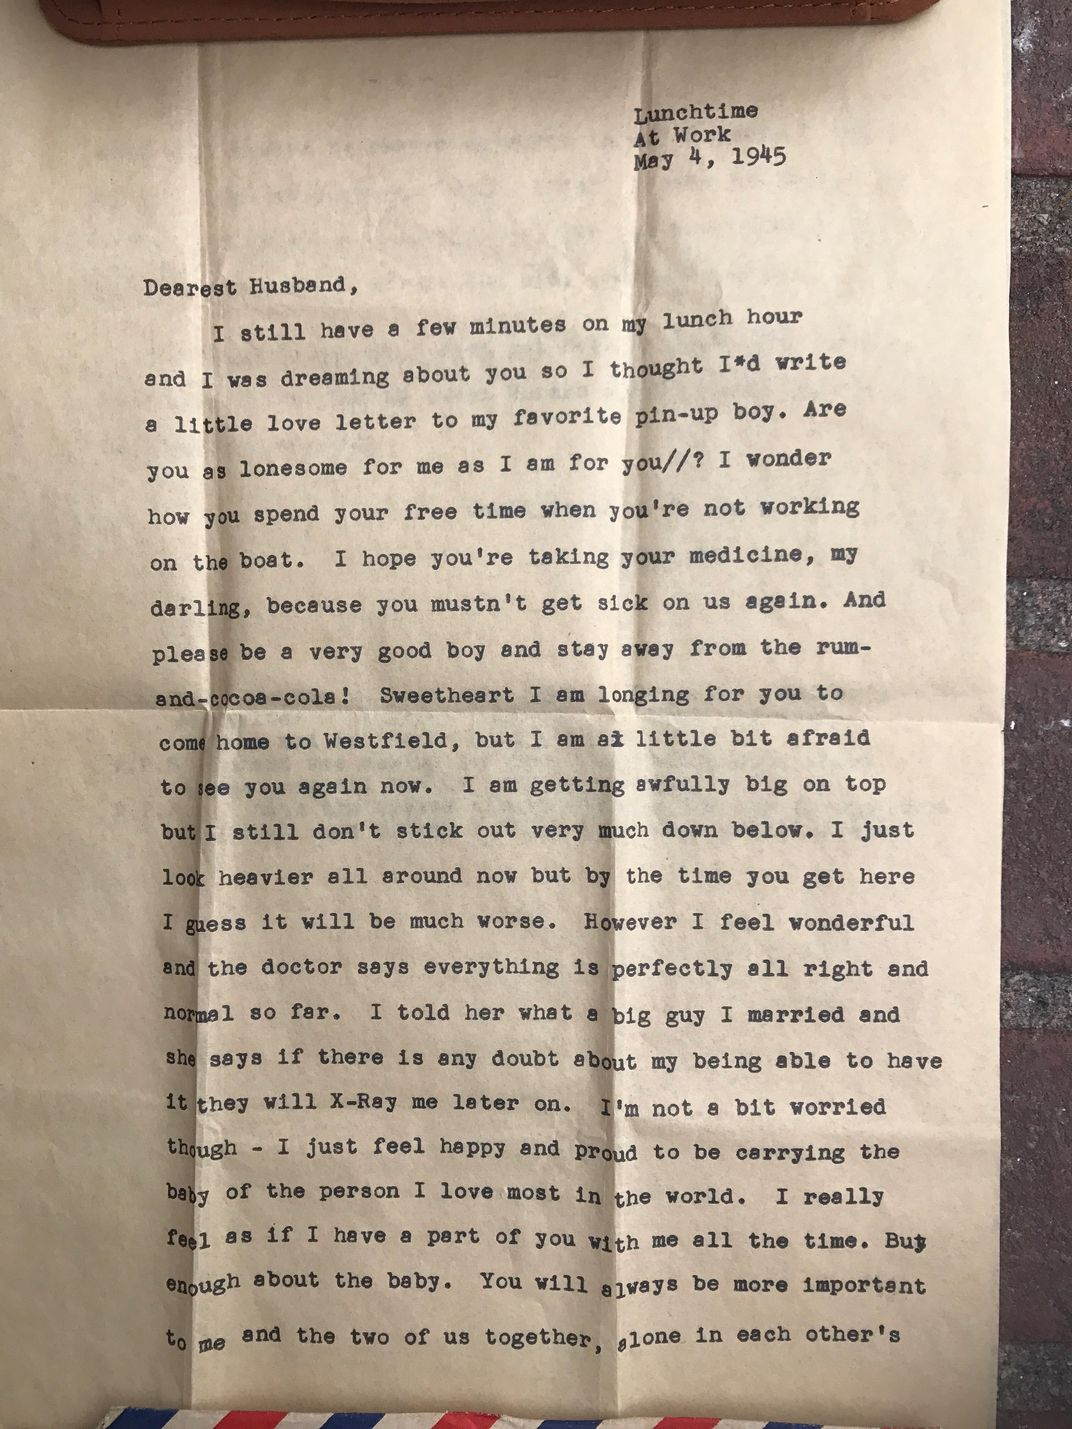 72 Year Old Love Letter Returned to WWII Veteran